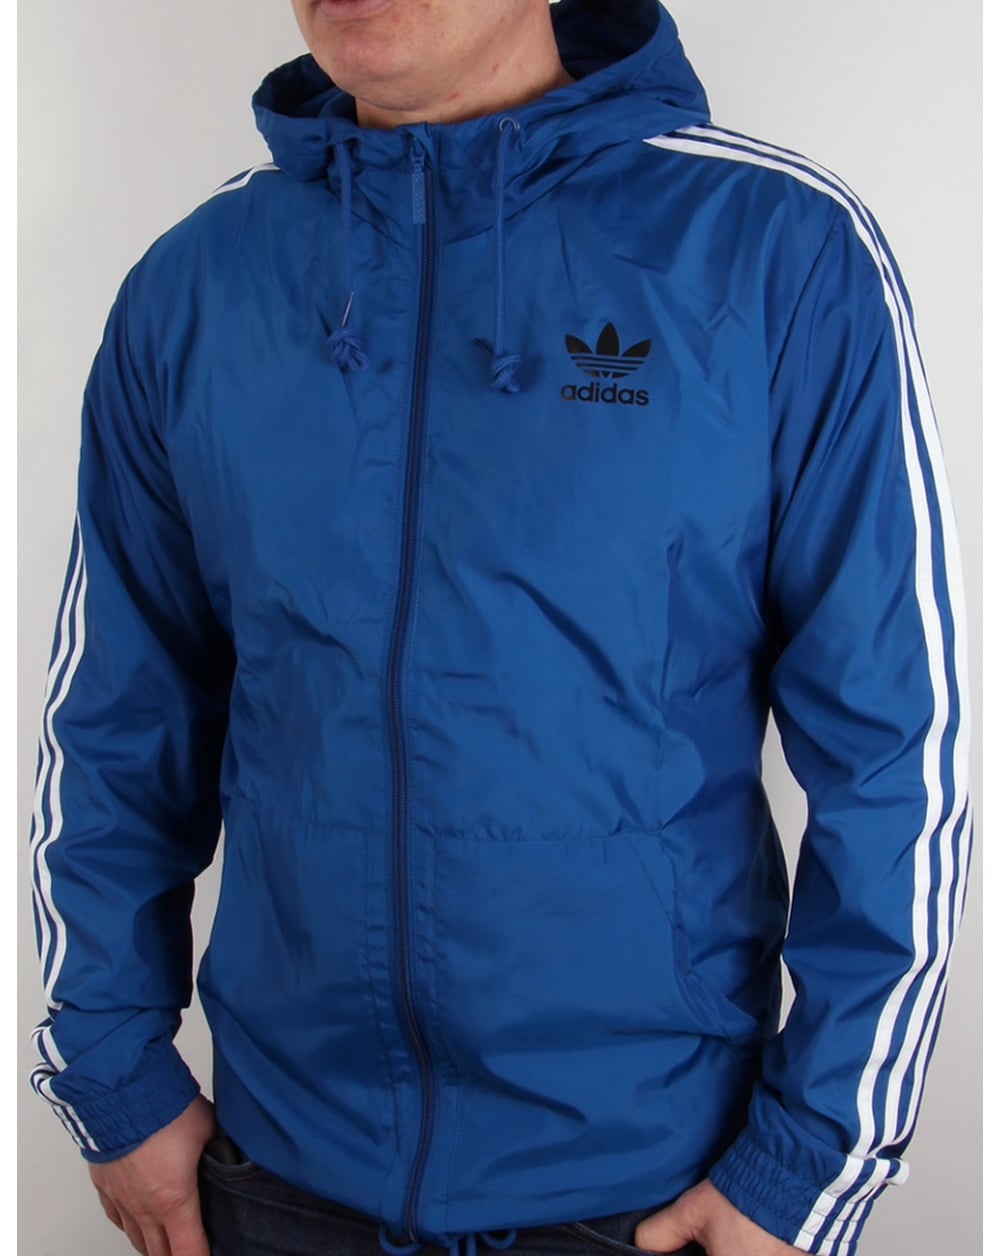 adidas originals itasca windbreaker eqt blue jacket. Black Bedroom Furniture Sets. Home Design Ideas